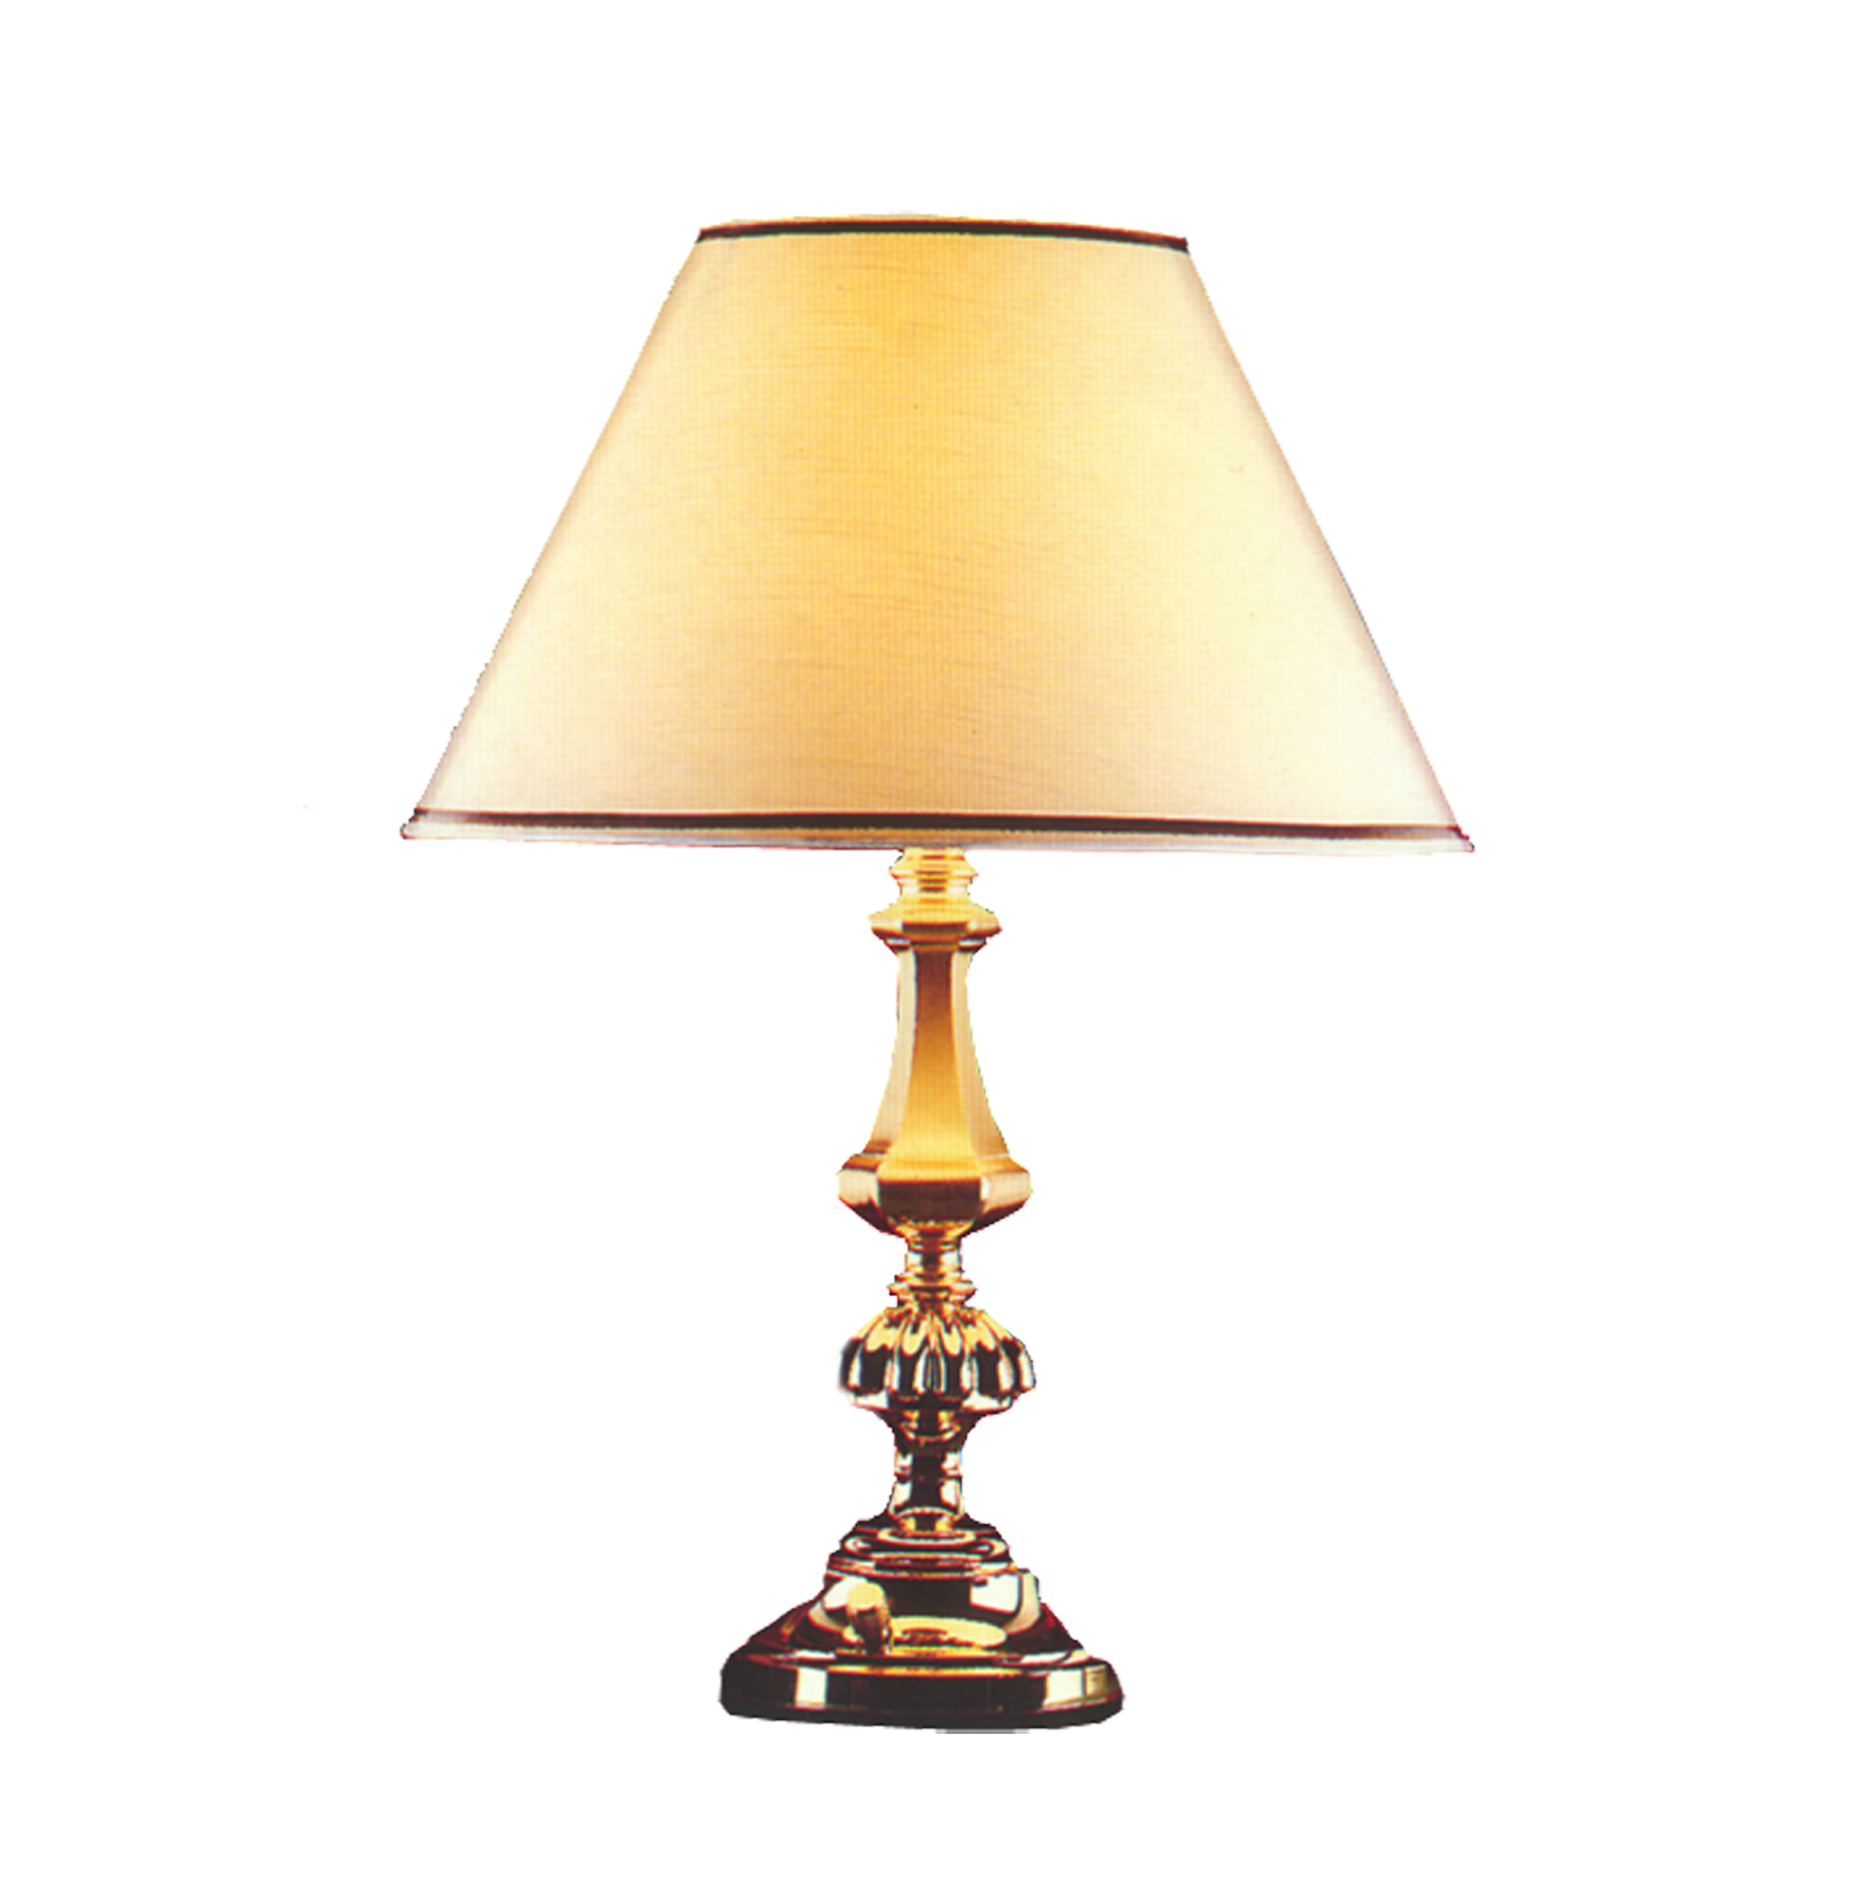 Lampe Light De Lamp Bureau Table Exquisite PNG Image